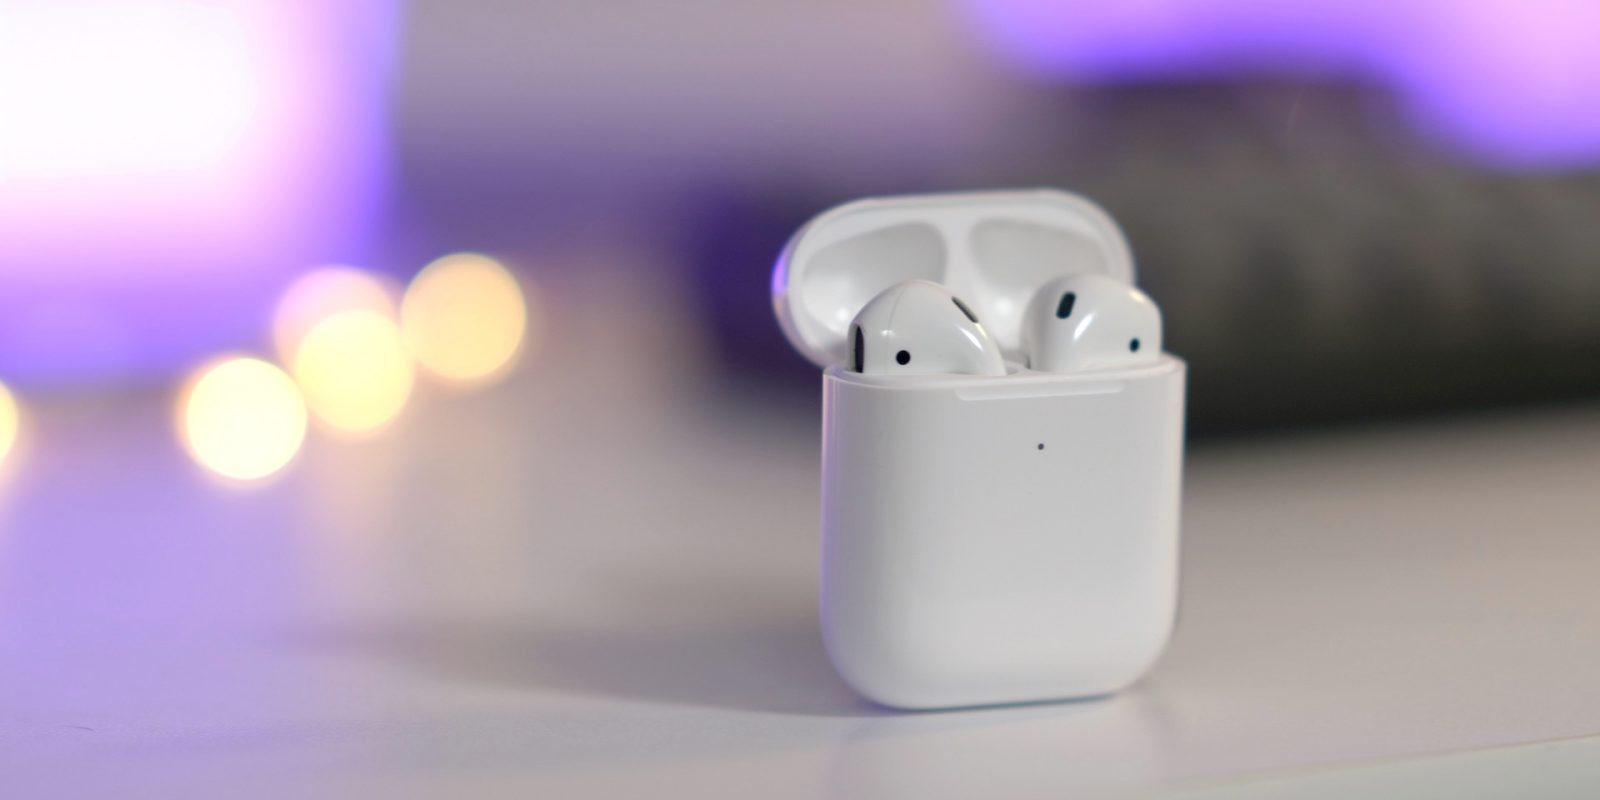 How to find the serial number of your AirPods